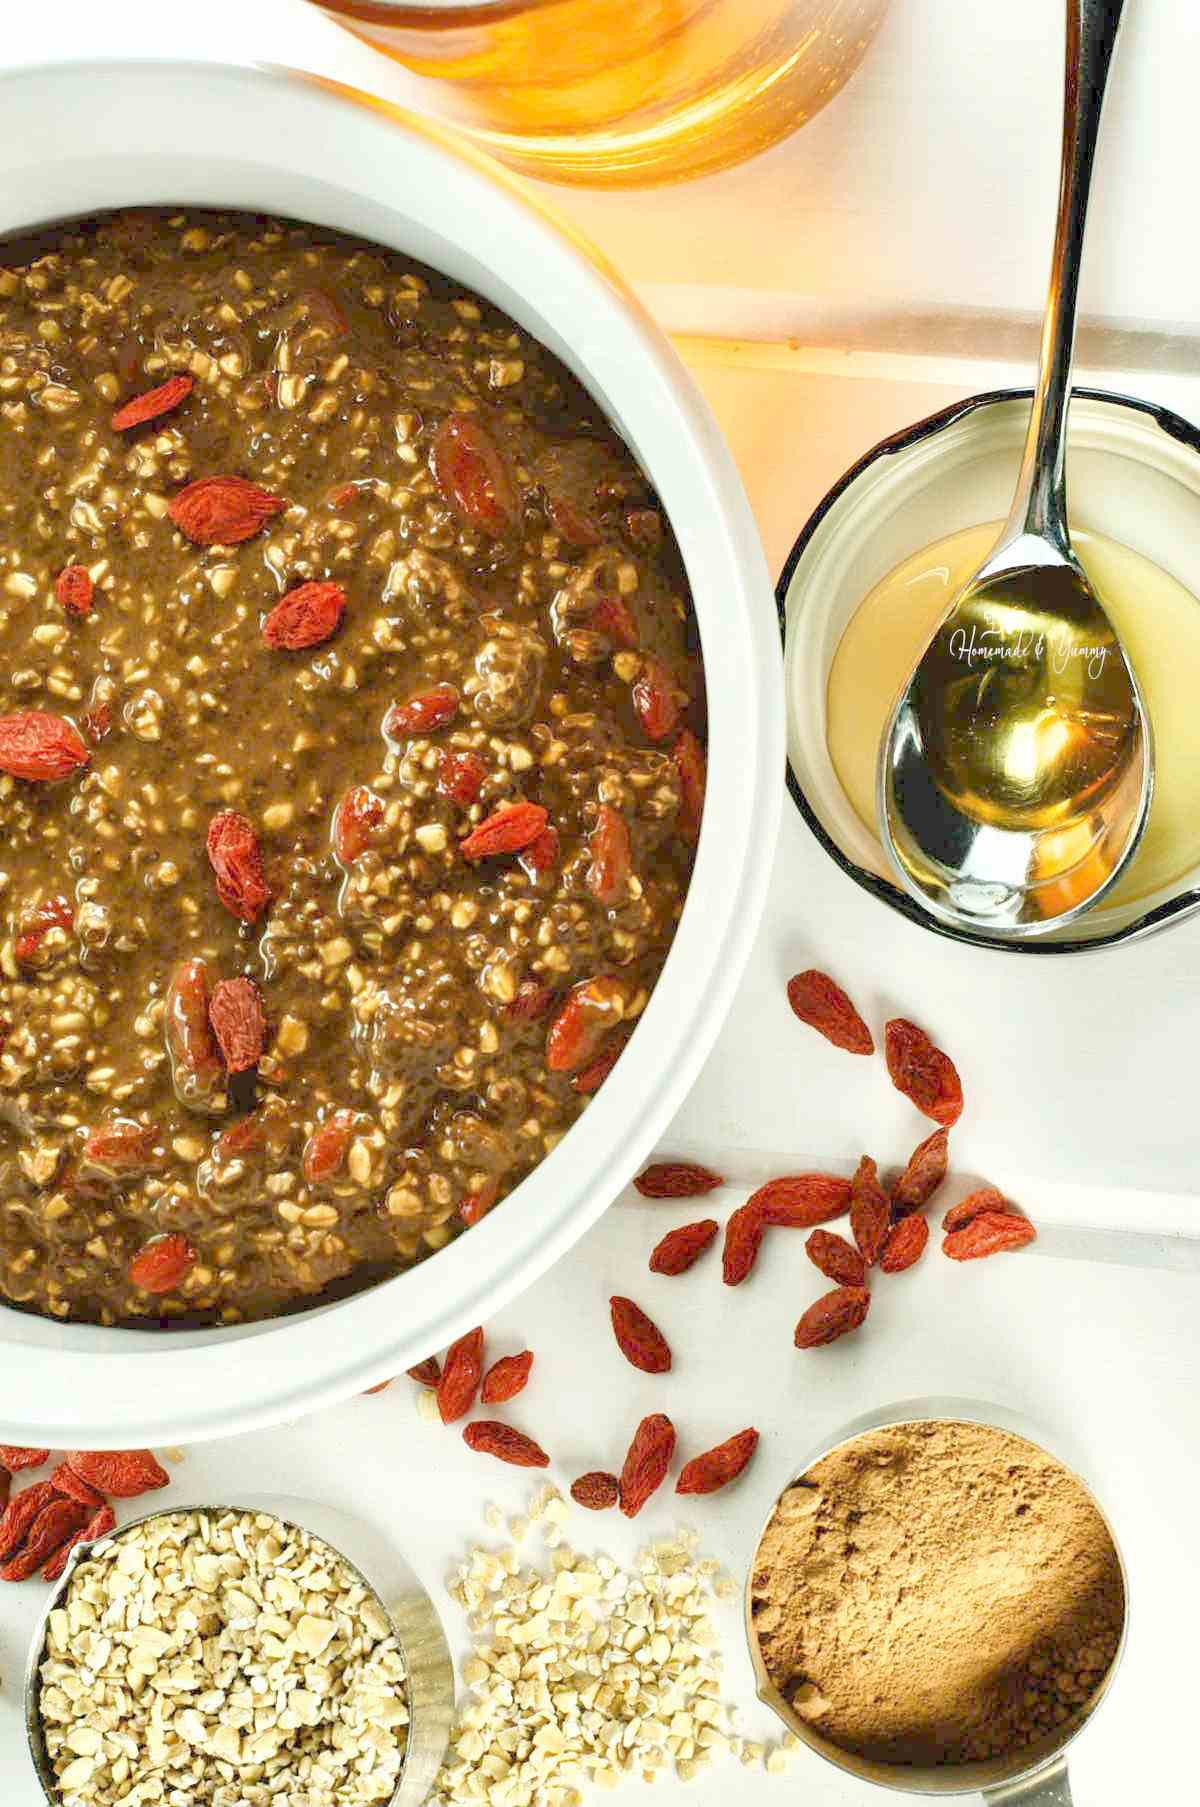 Healthy breakfast recipe with chocolate and oats.